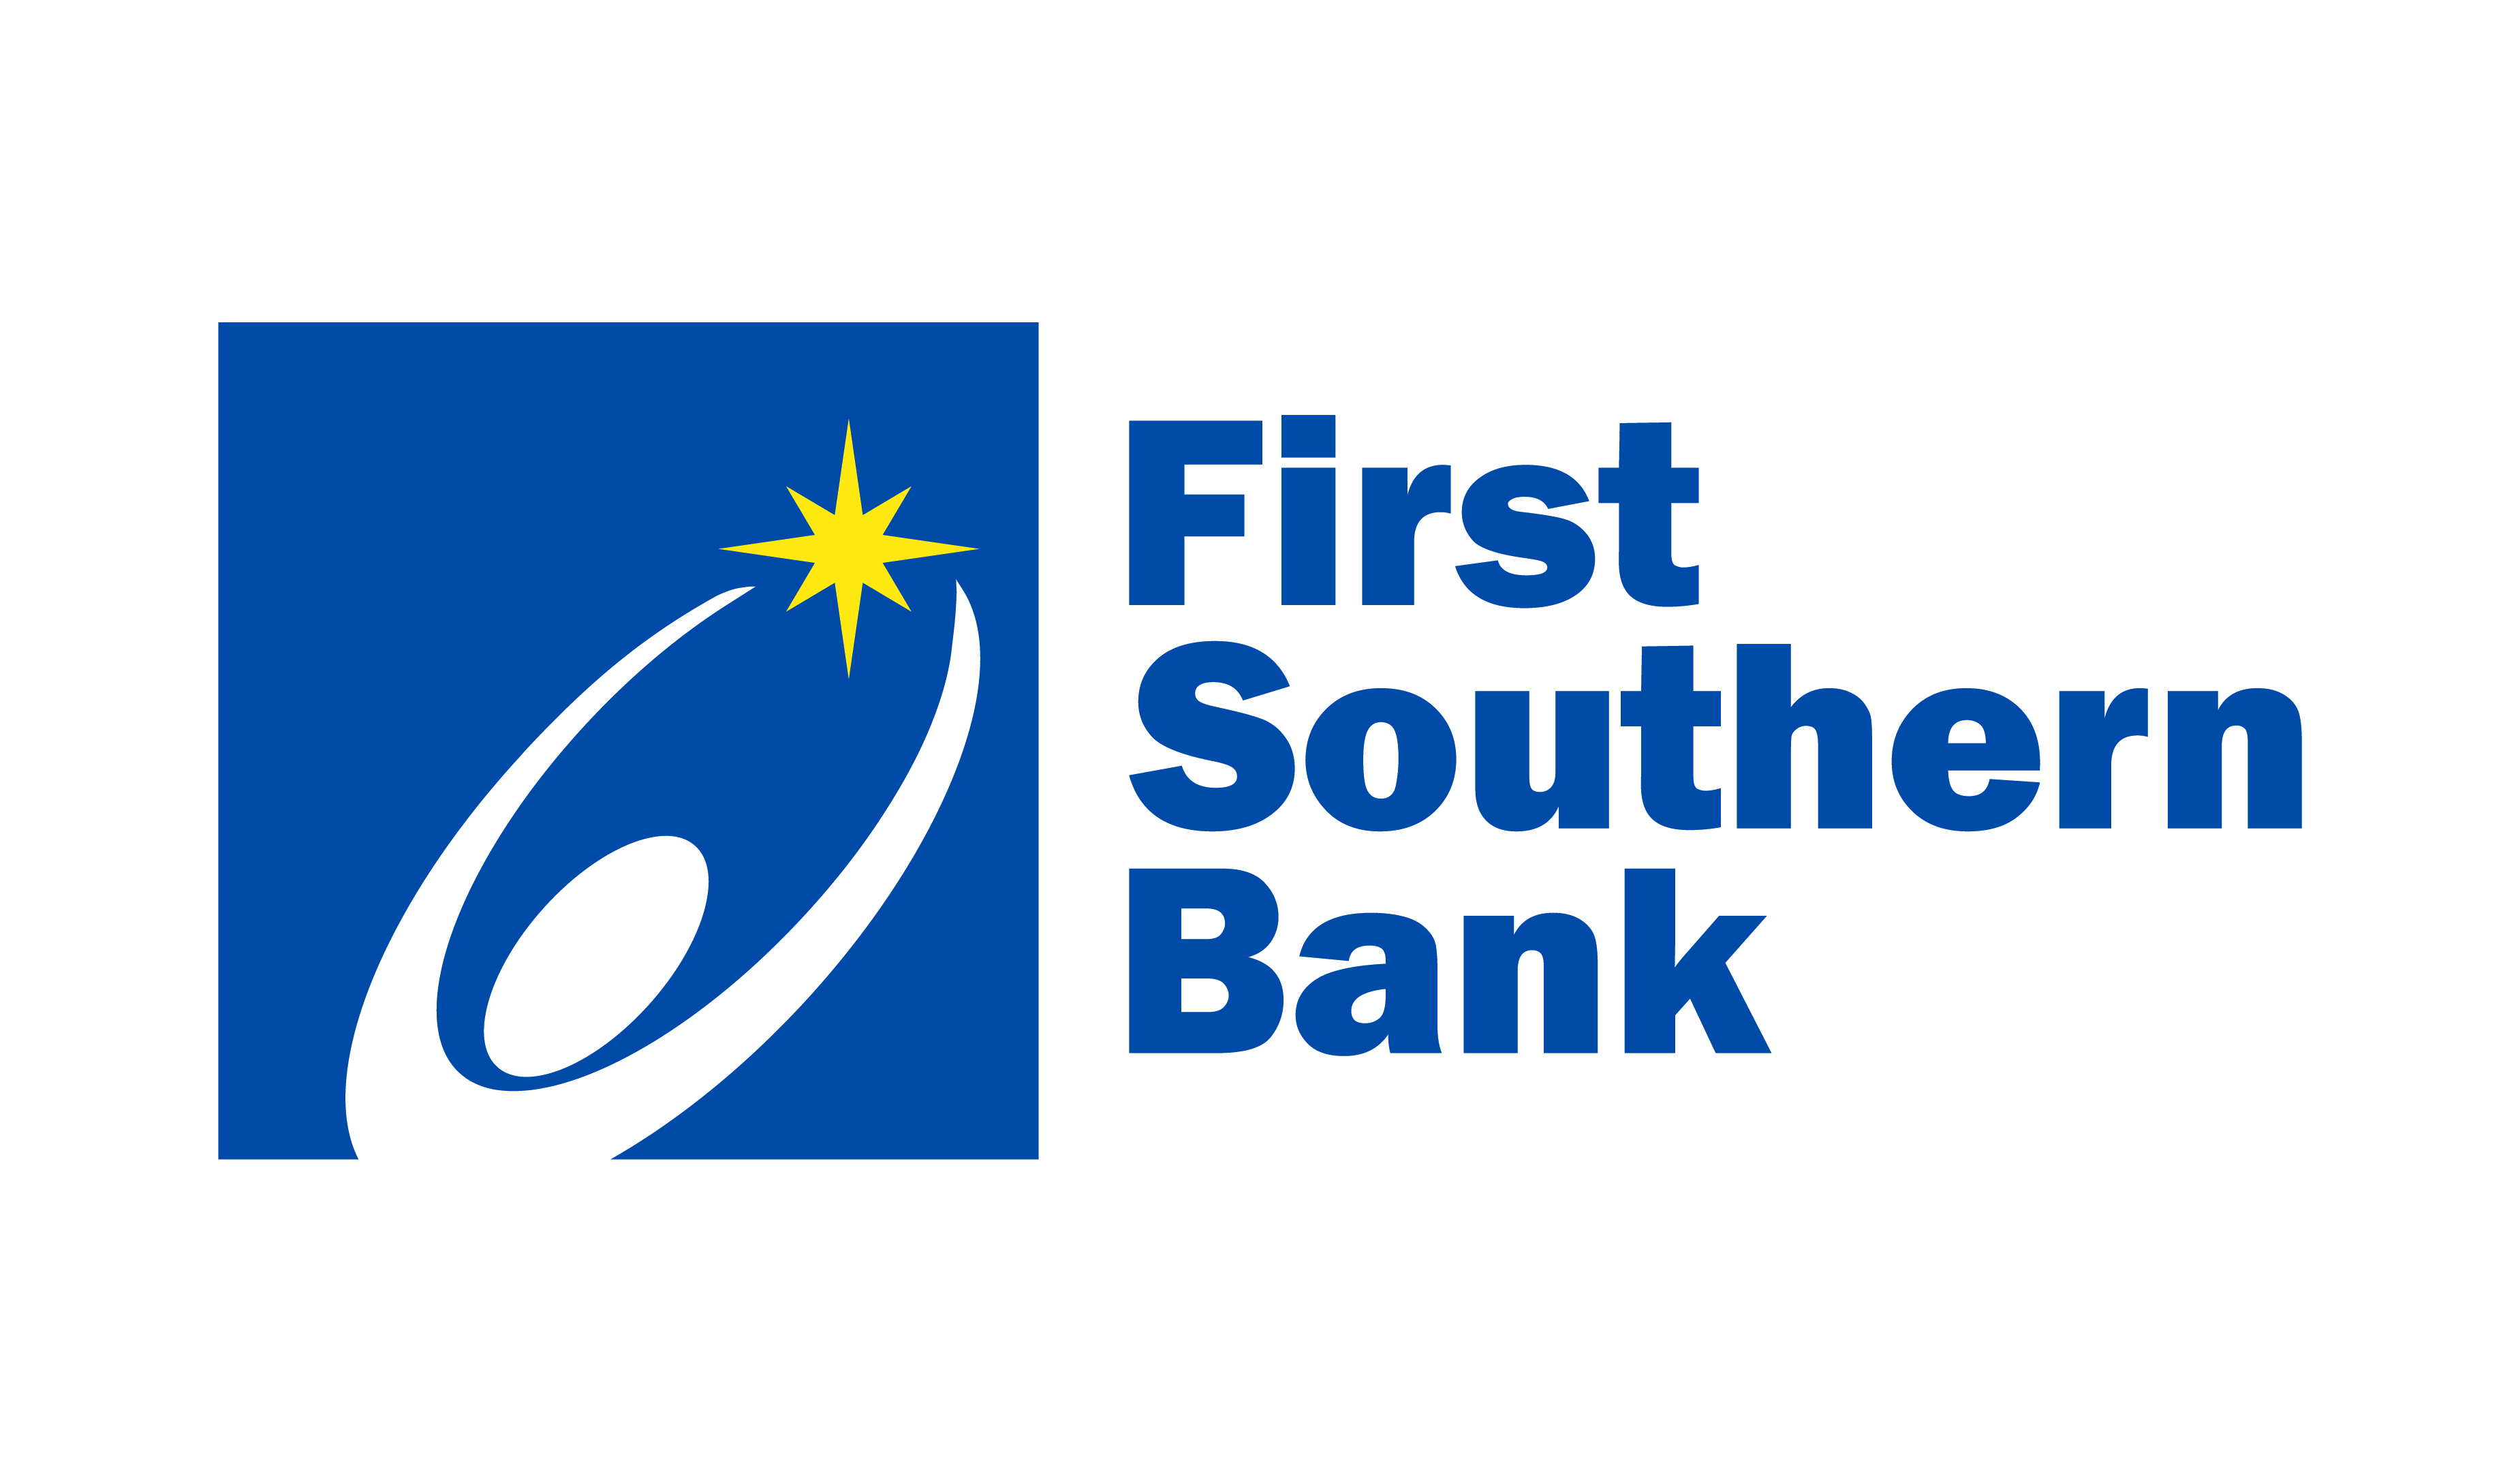 First Southern Bank